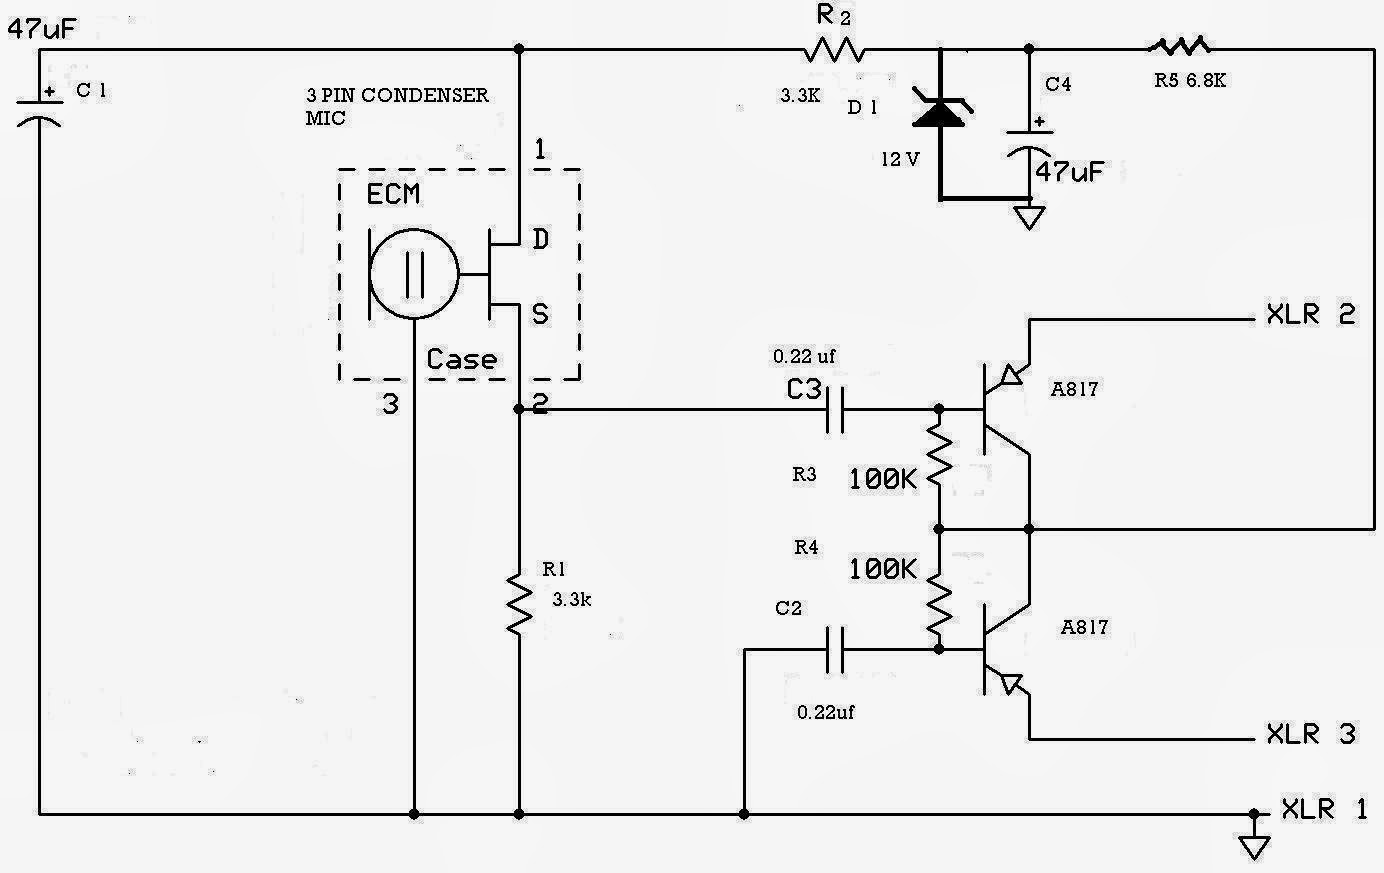 Diy Condenser Mic Harp Schematic Wiring Diagram Preamp Microphone Circuit 3 Pin Used In Mixer